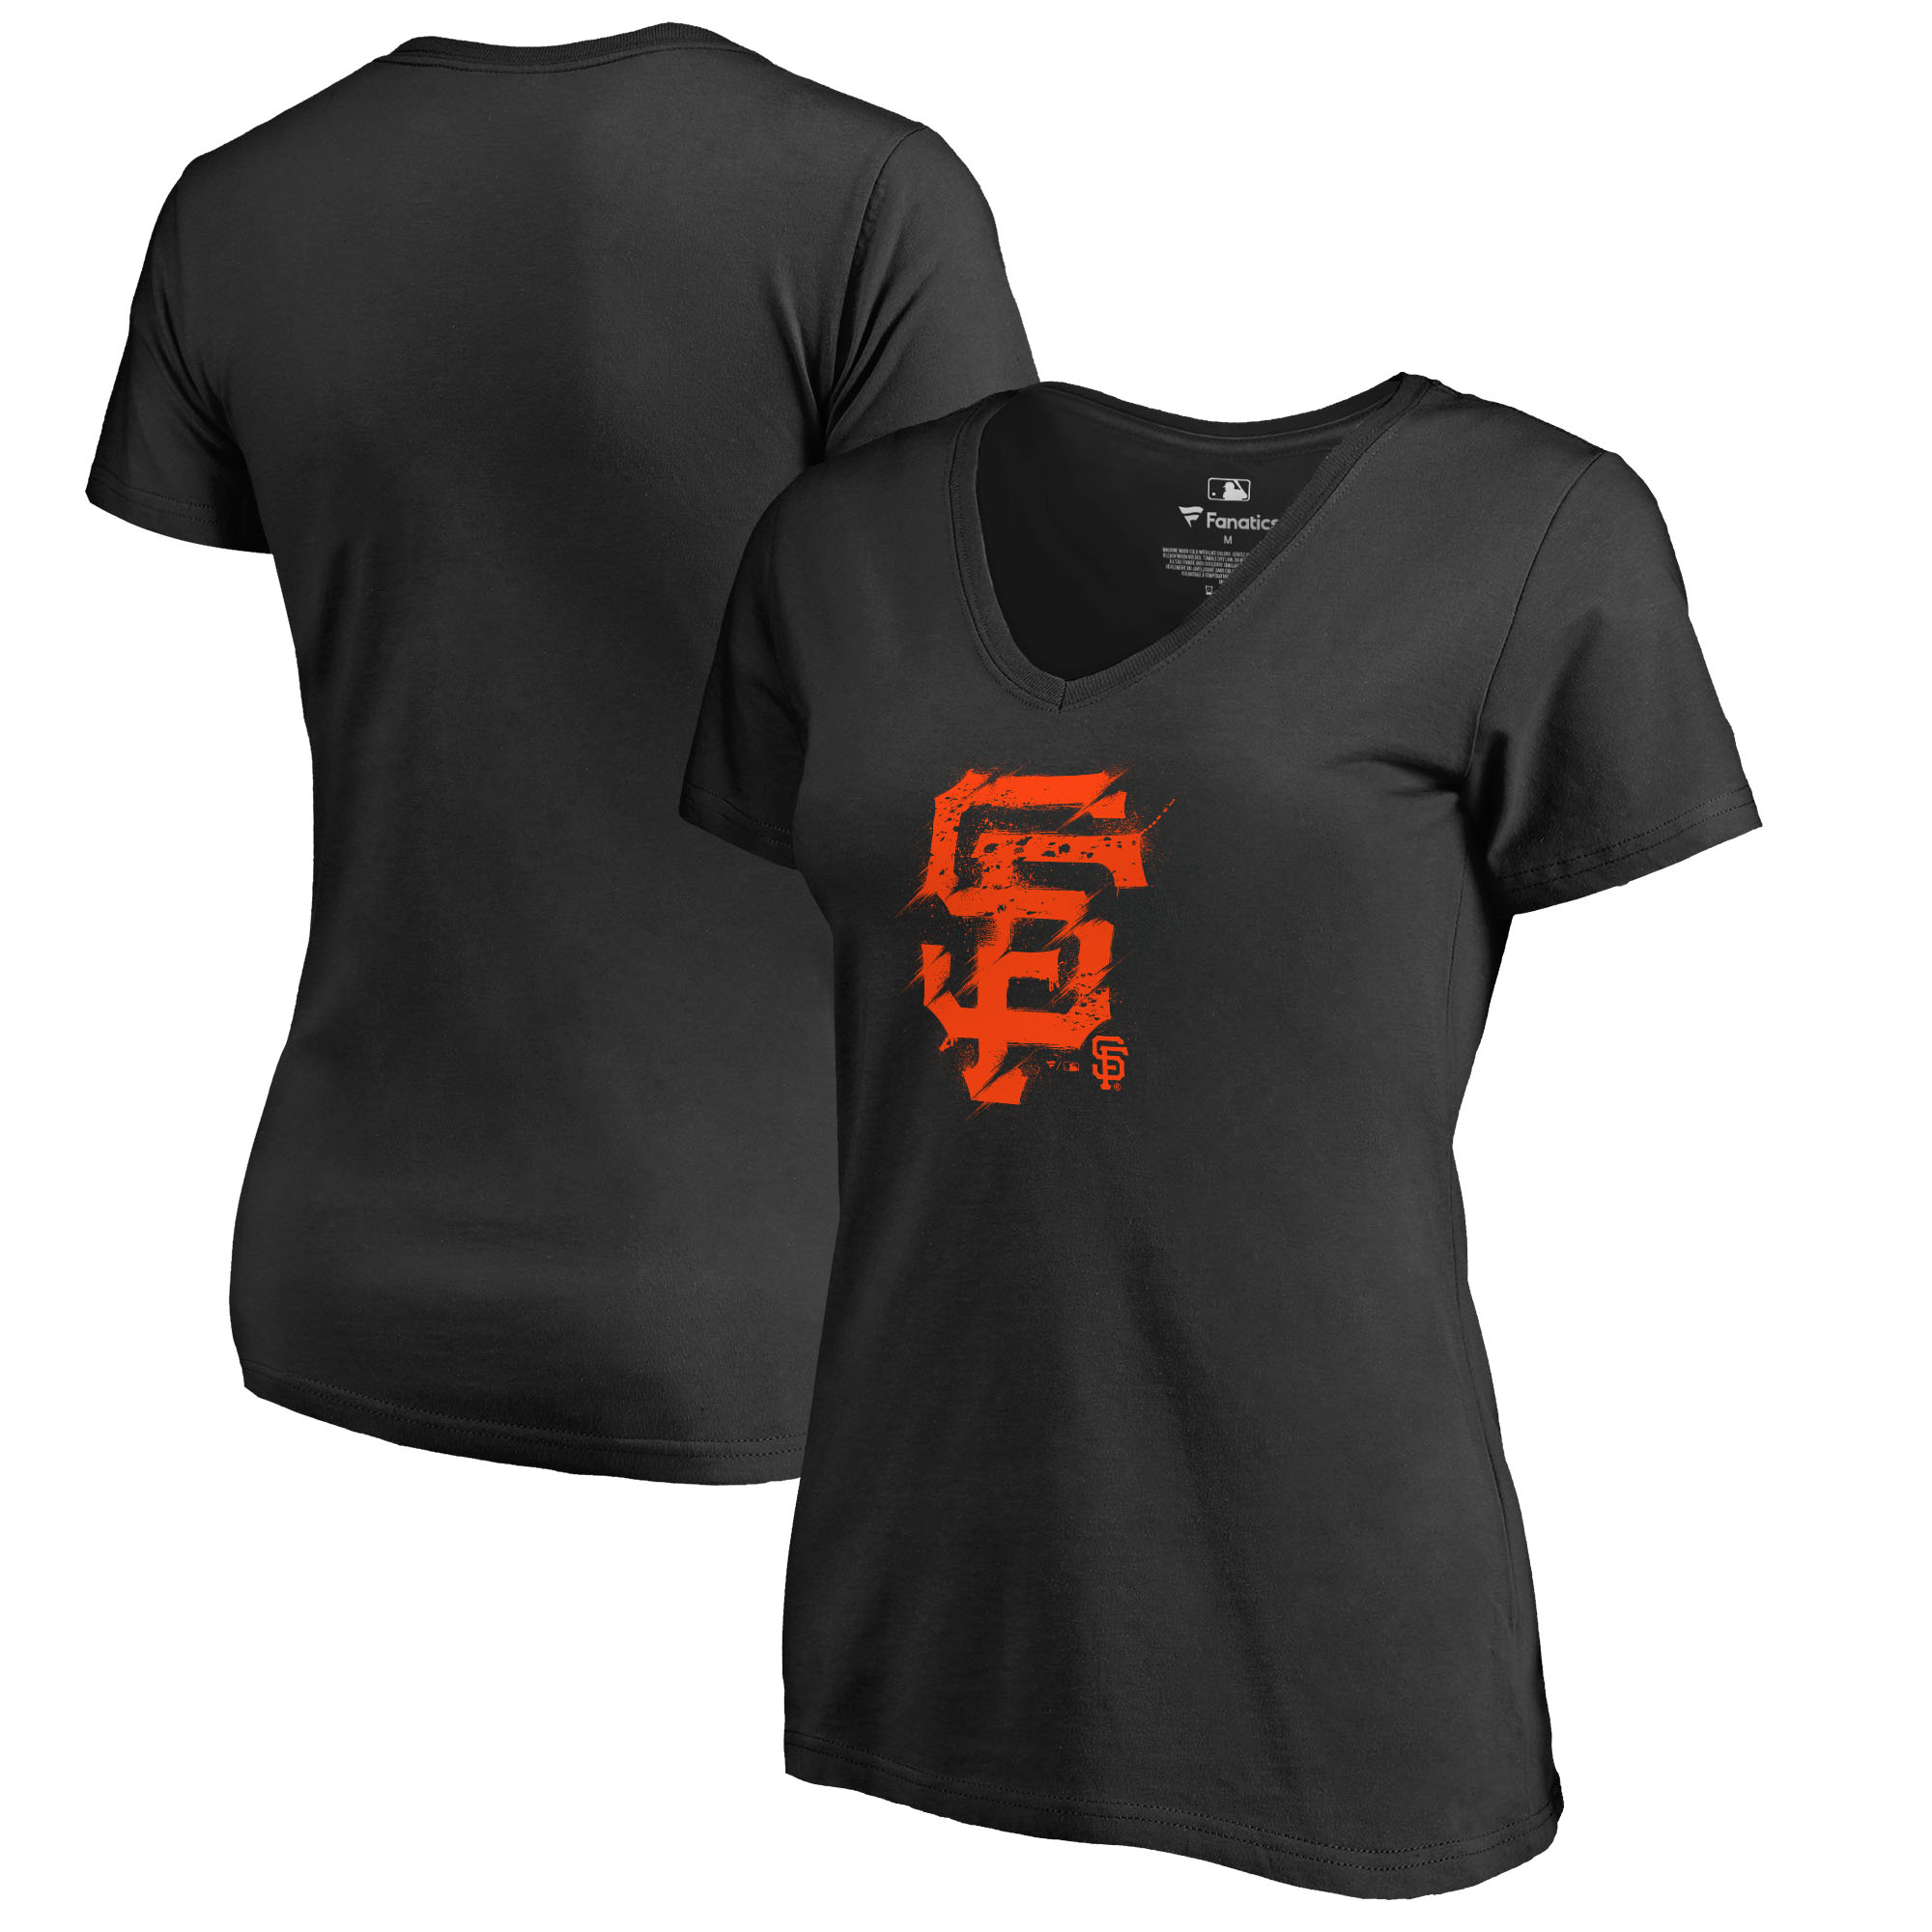 San Francisco Giants Fanatics Branded Women's Splatter Logo V-Neck T-Shirt - Black